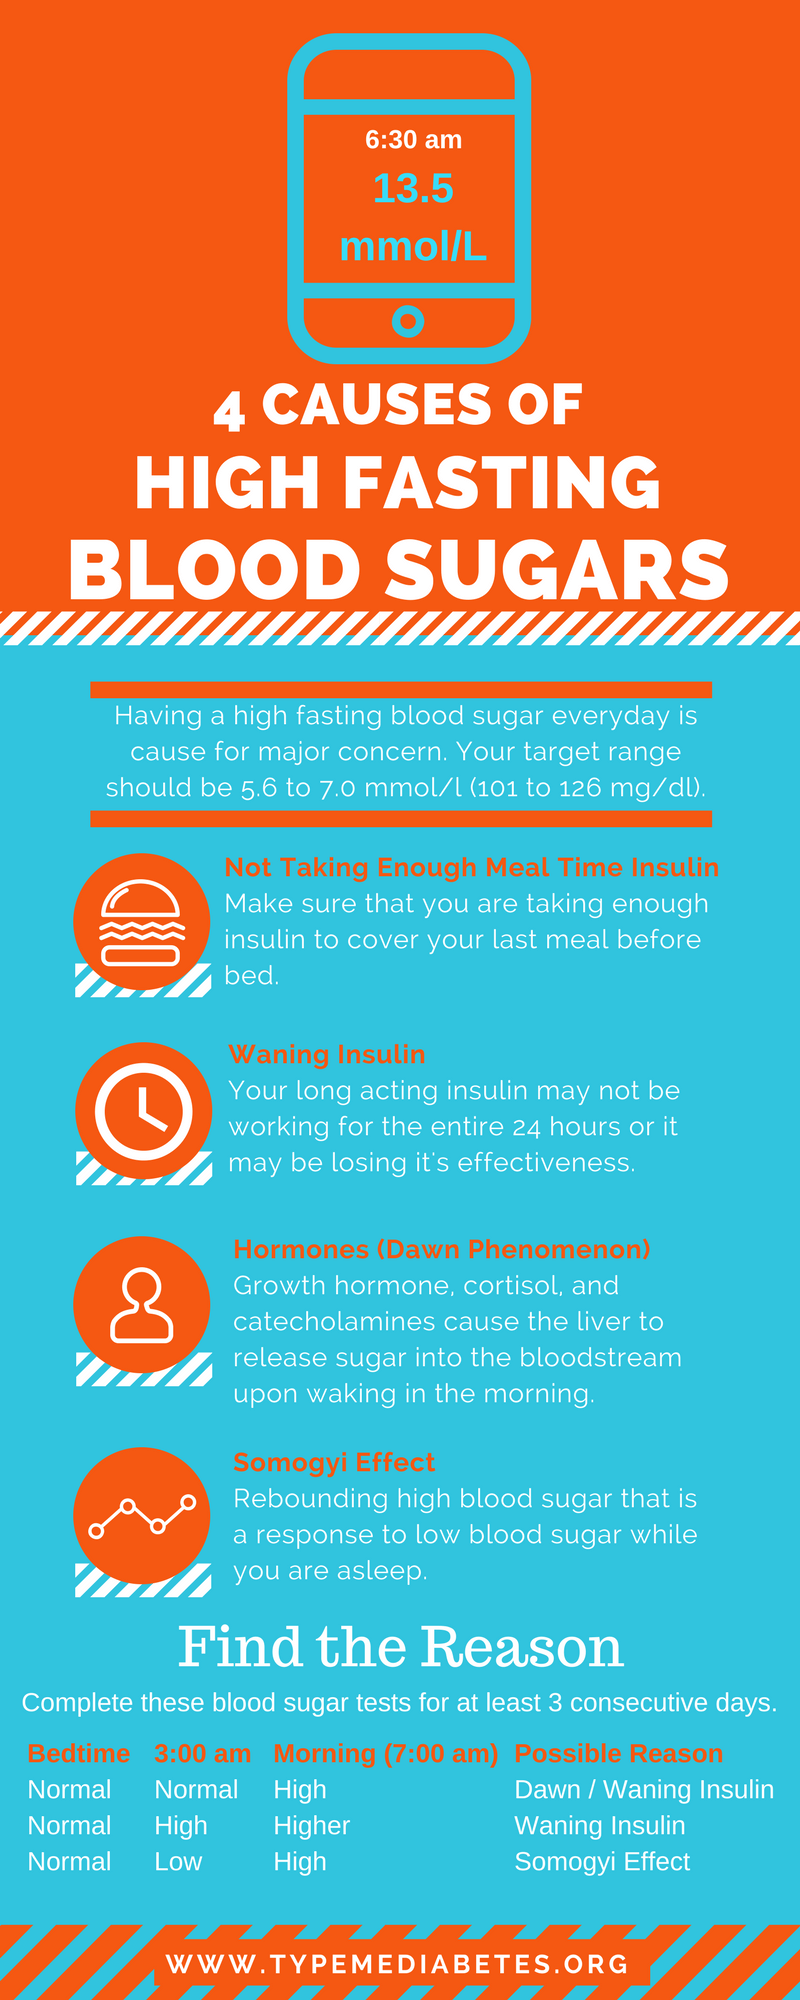 4 CAUSES OF HIGH FASTING BLOOD SUGARS